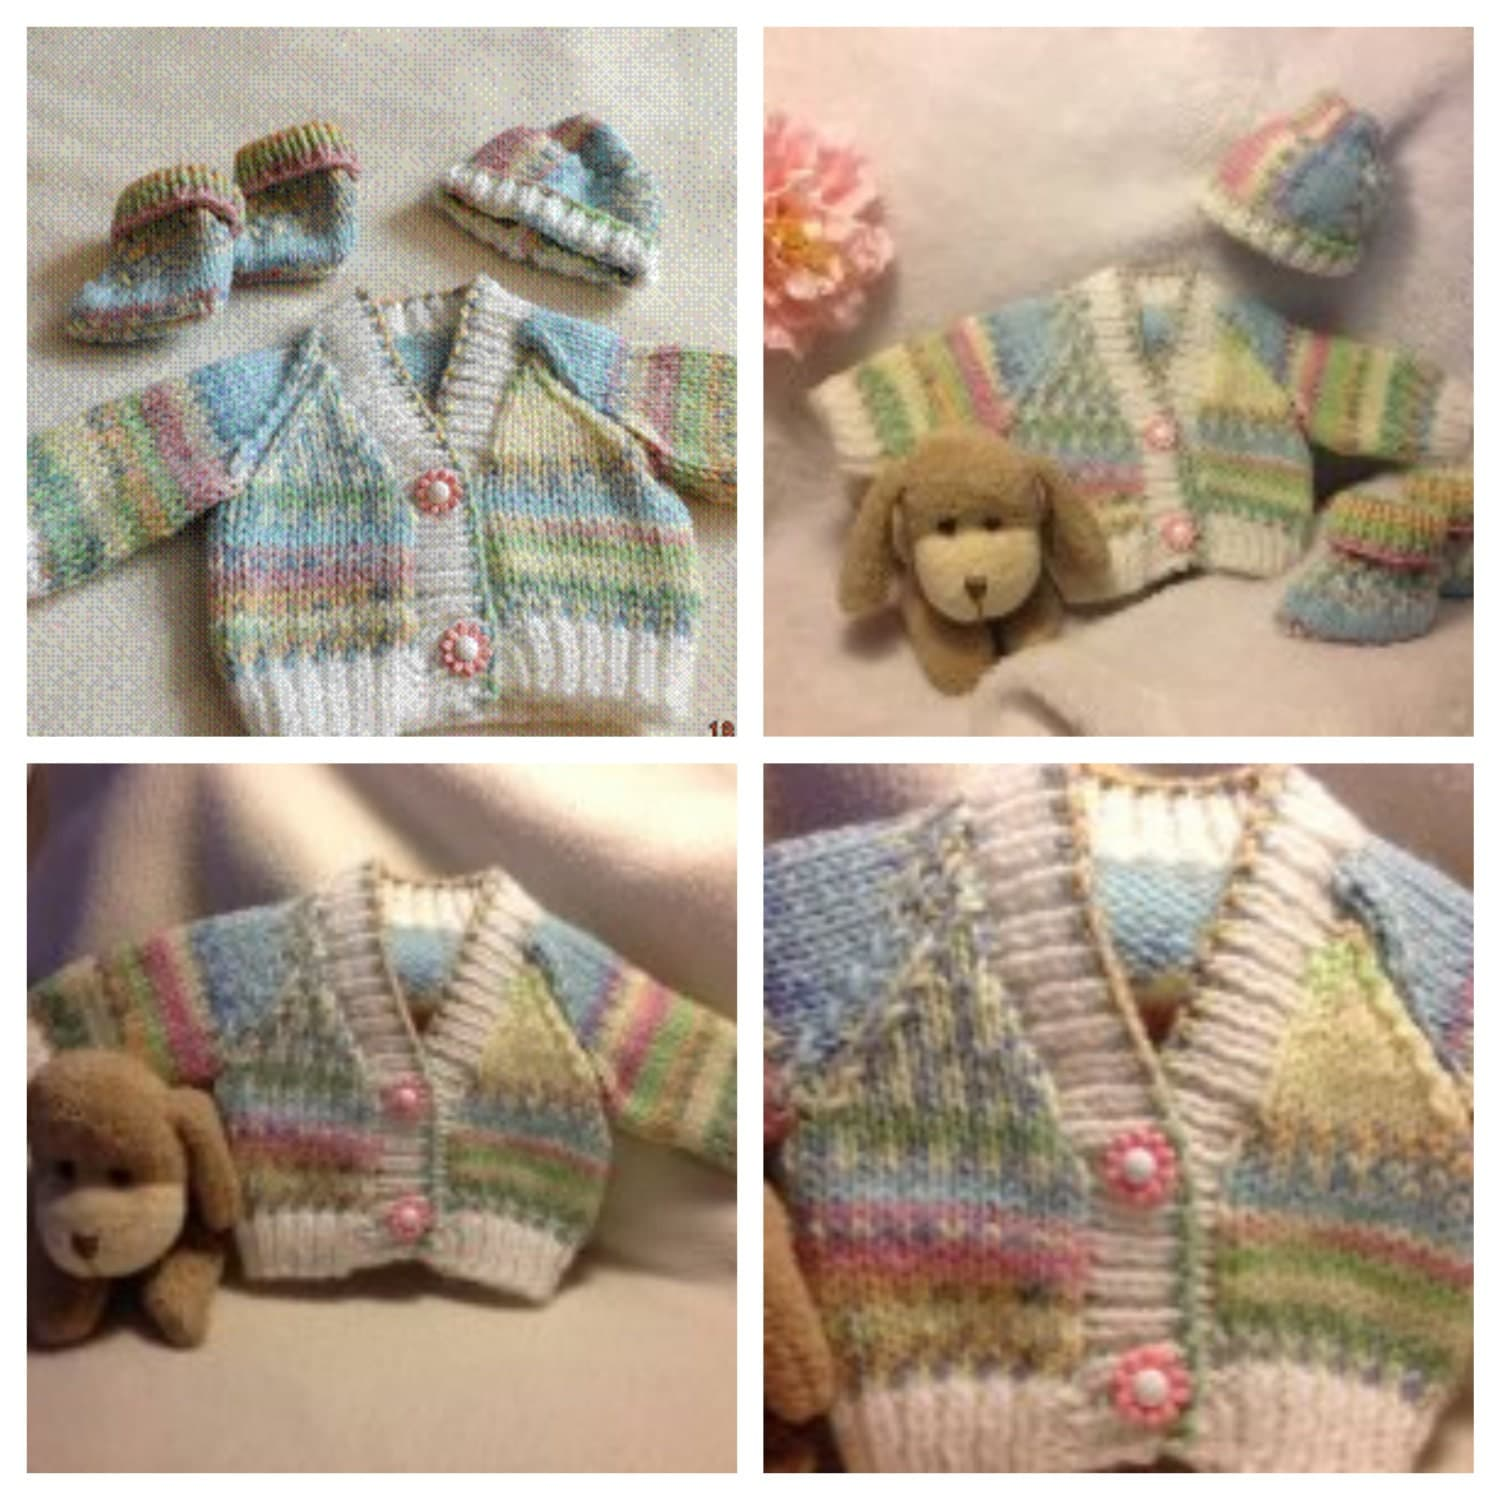 Premature Baby Gifts Ireland : Baby gift knitting pattern knit for premature shower